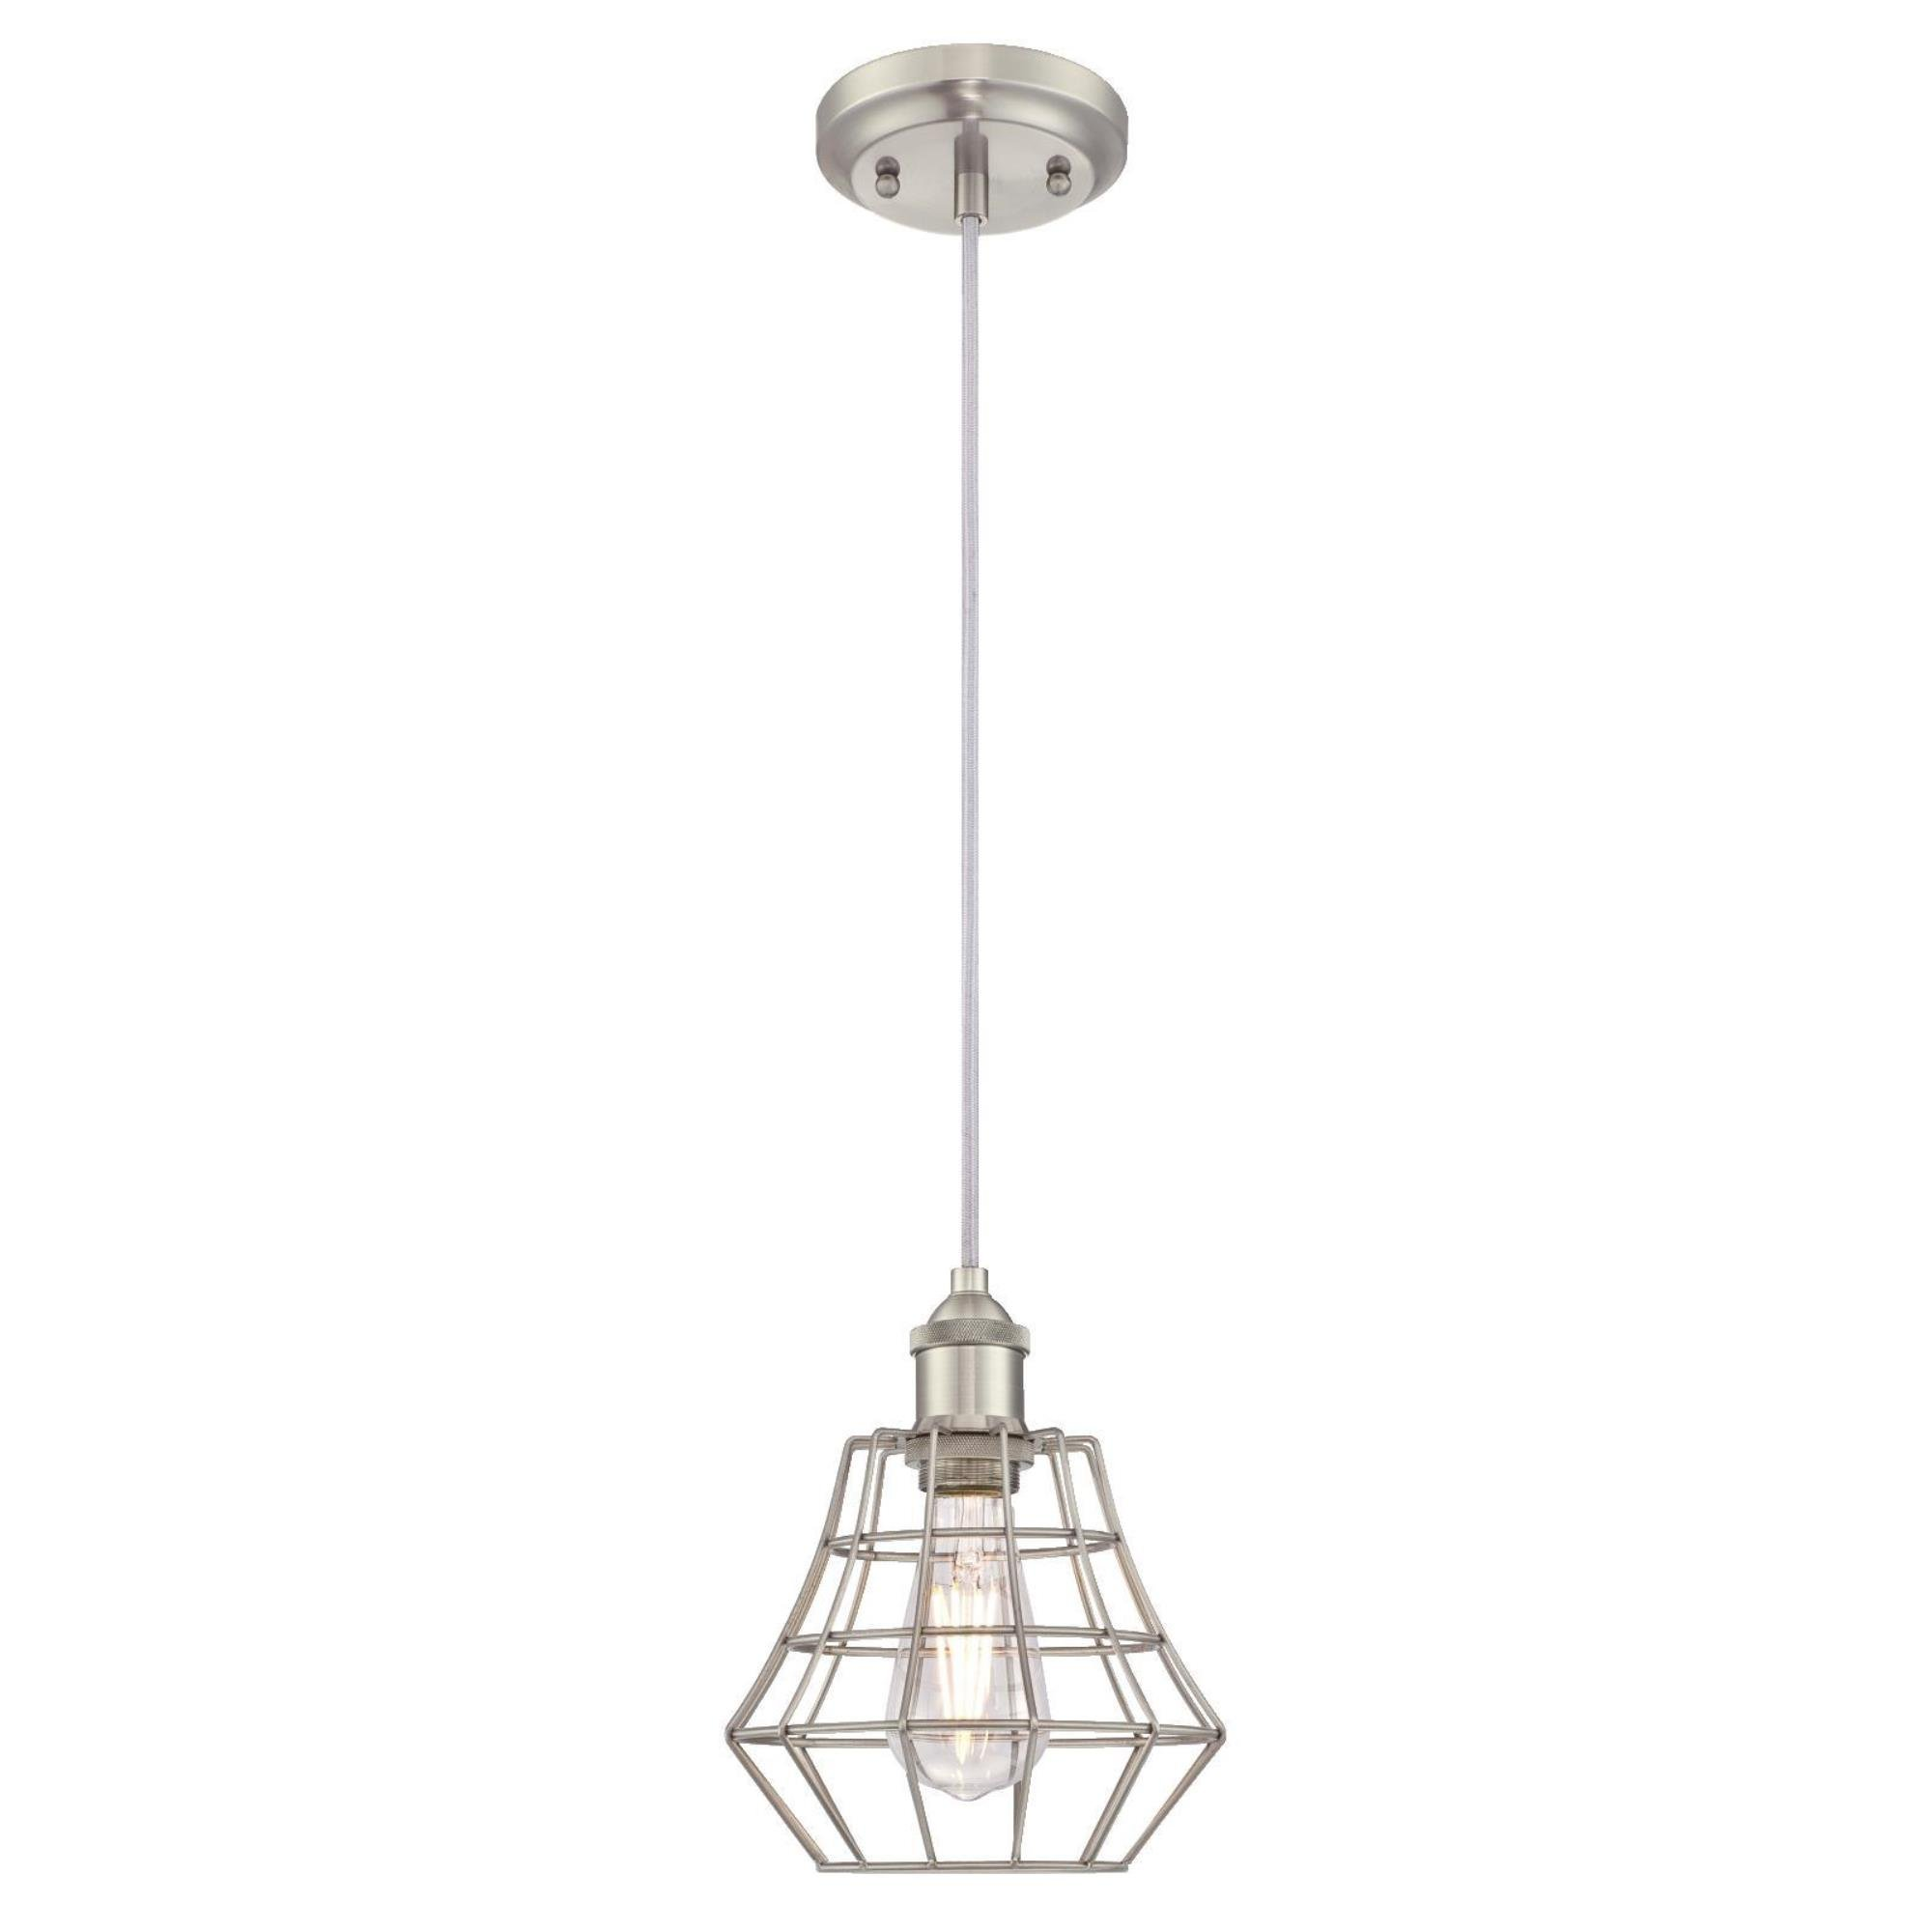 Westinghouse 6337200 Nathaniel One-Light Indoor Mini Pendant, Brushed Nickel Finish with Angled Bell Cage Shade